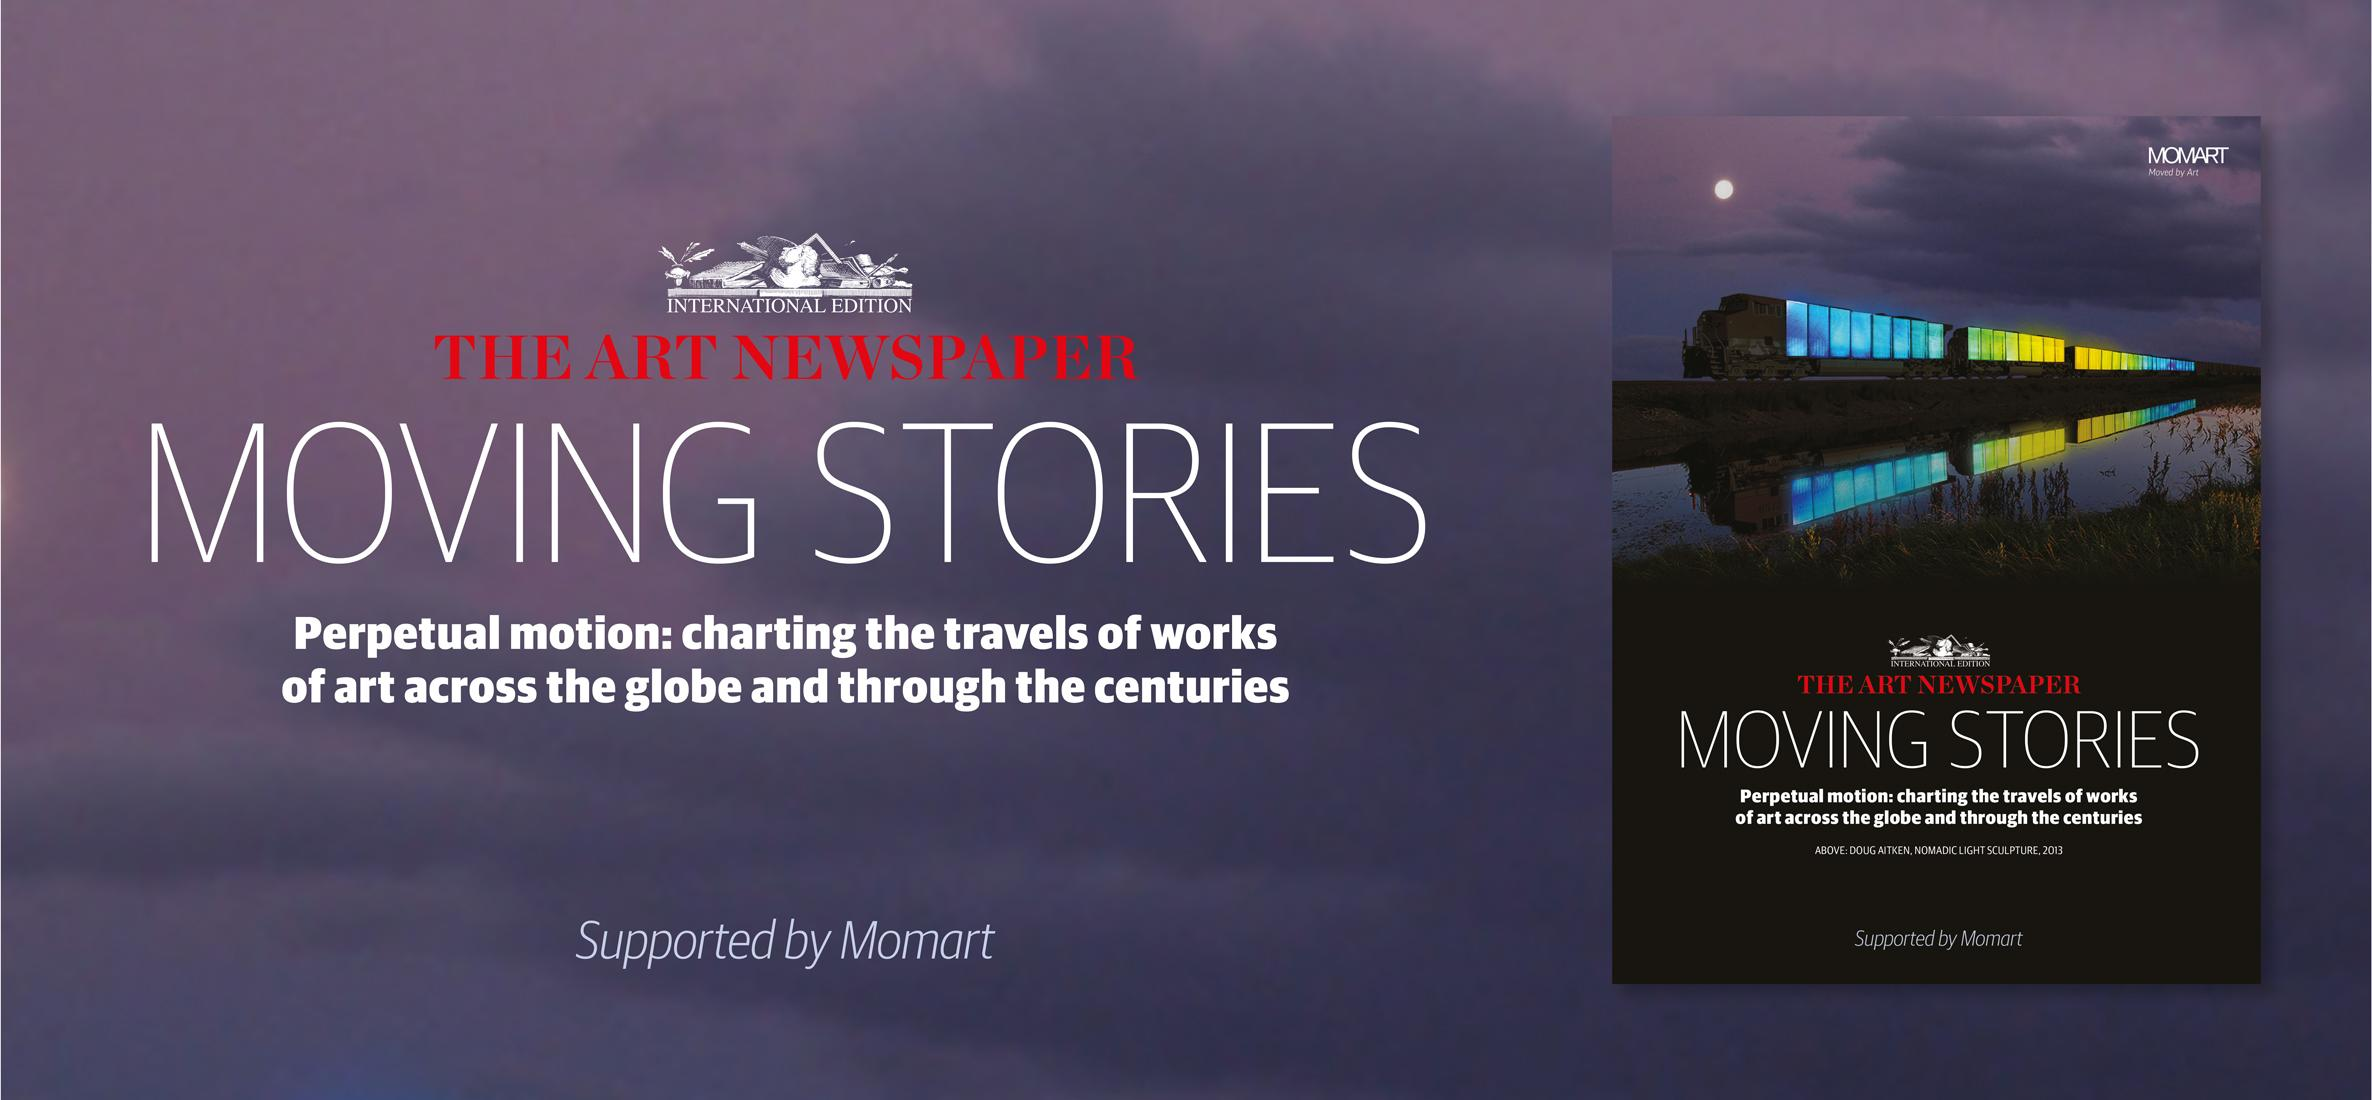 Momart - Moving Stories Magazine